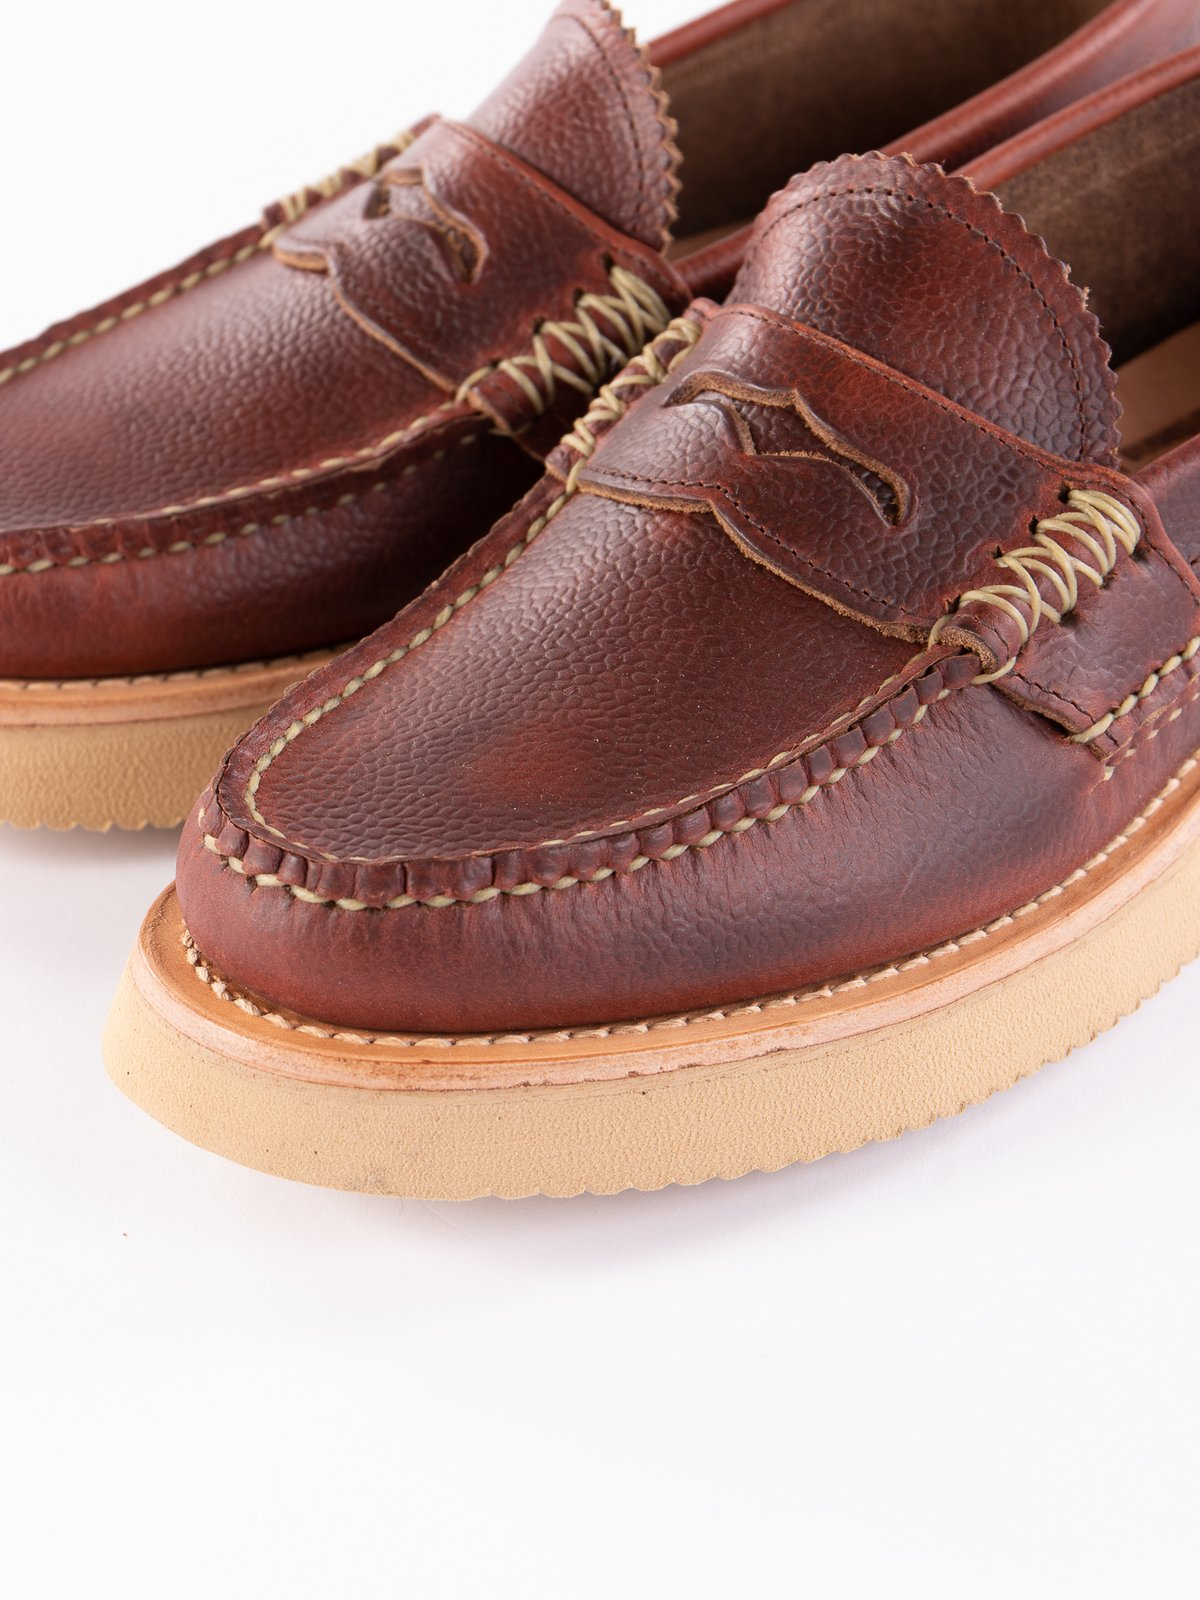 SG Tan Loafer Shoe Exclusive - Image 3